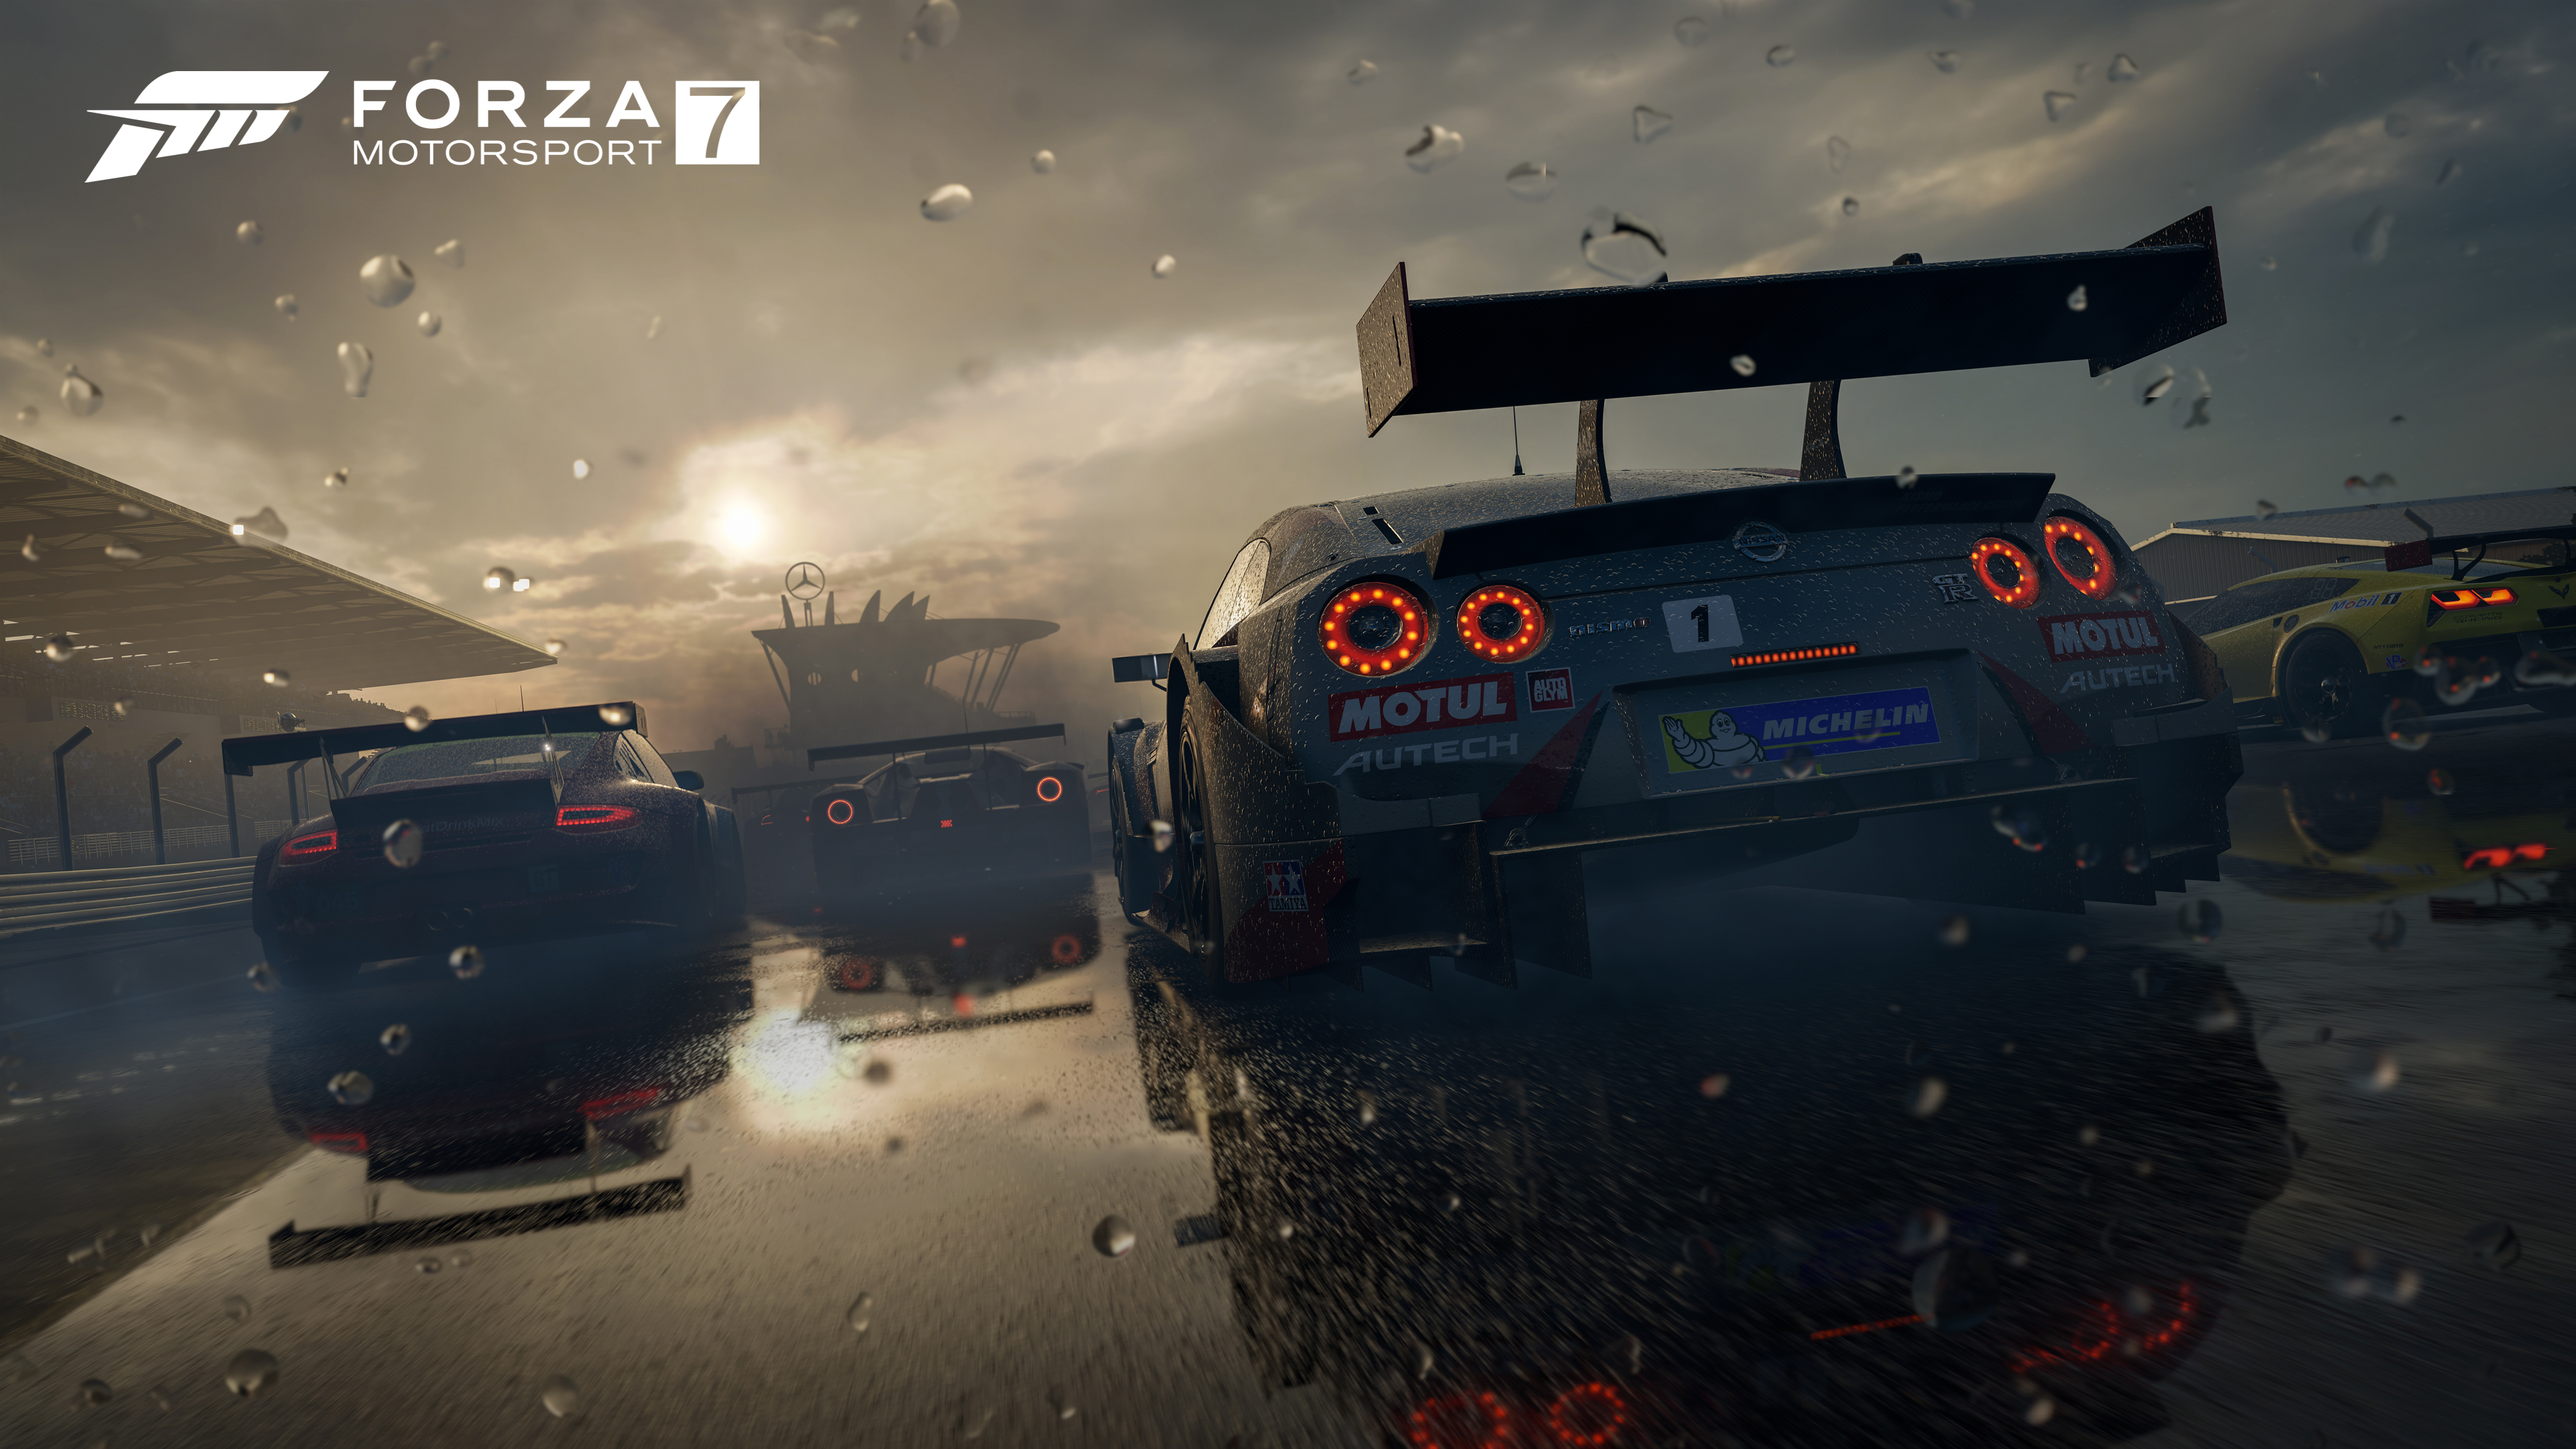 Forza Motorsport 7 is getting a new car pack tomorrow sponsored by Samsung QLED TV 1